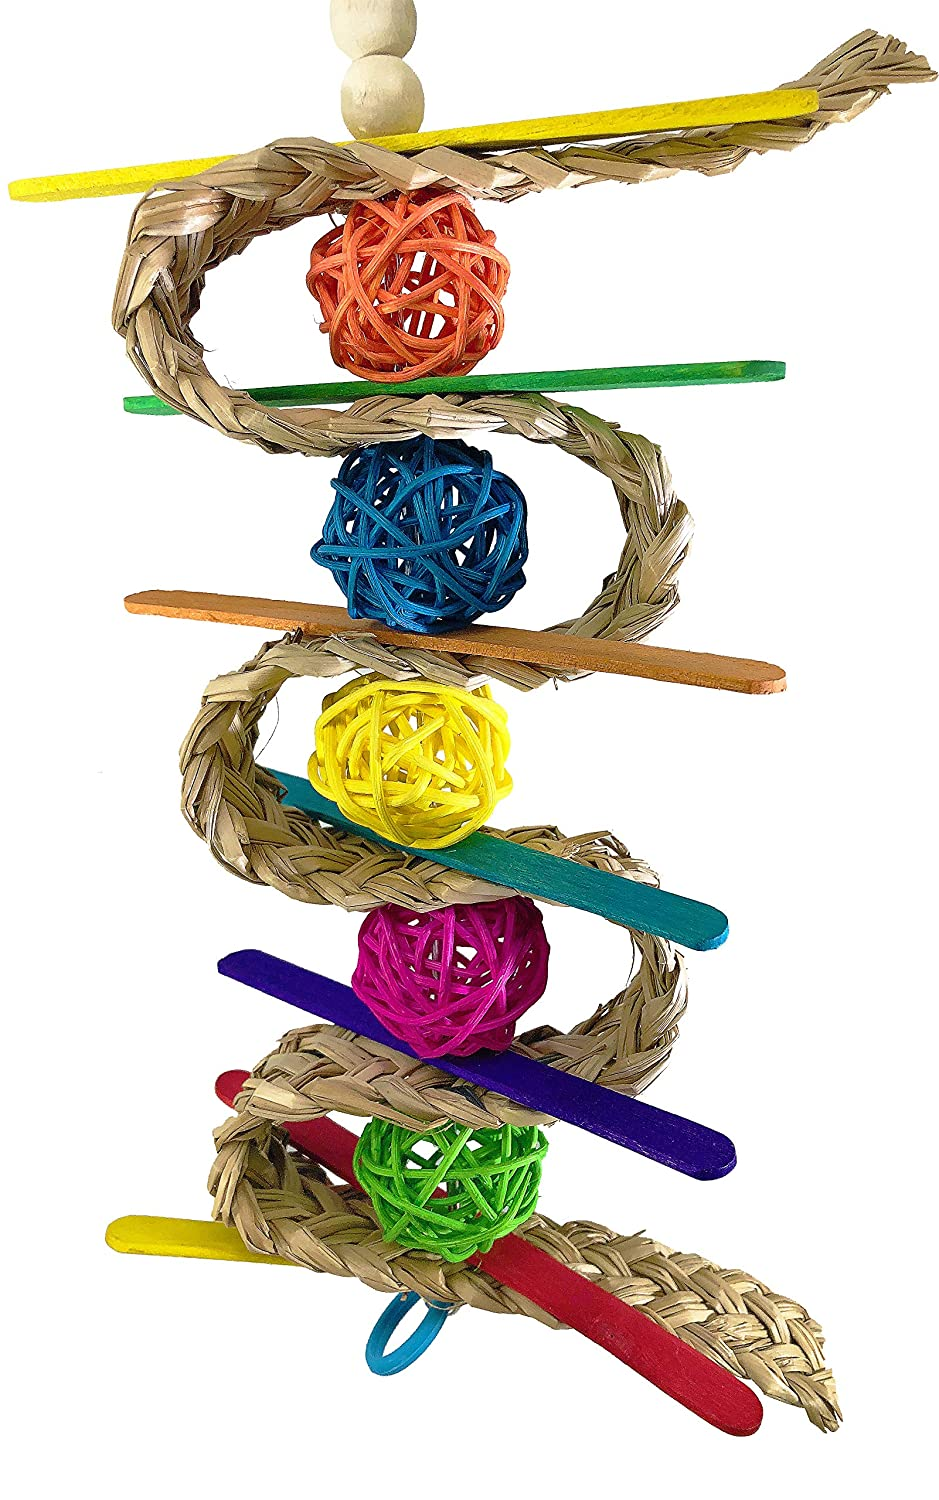 Bonka Bird Toys 00156 Chewballishous Bird Toy Parrot cage Toys Cages Natural Cockatiels parrotlets Quality Product Hand Made in The USA